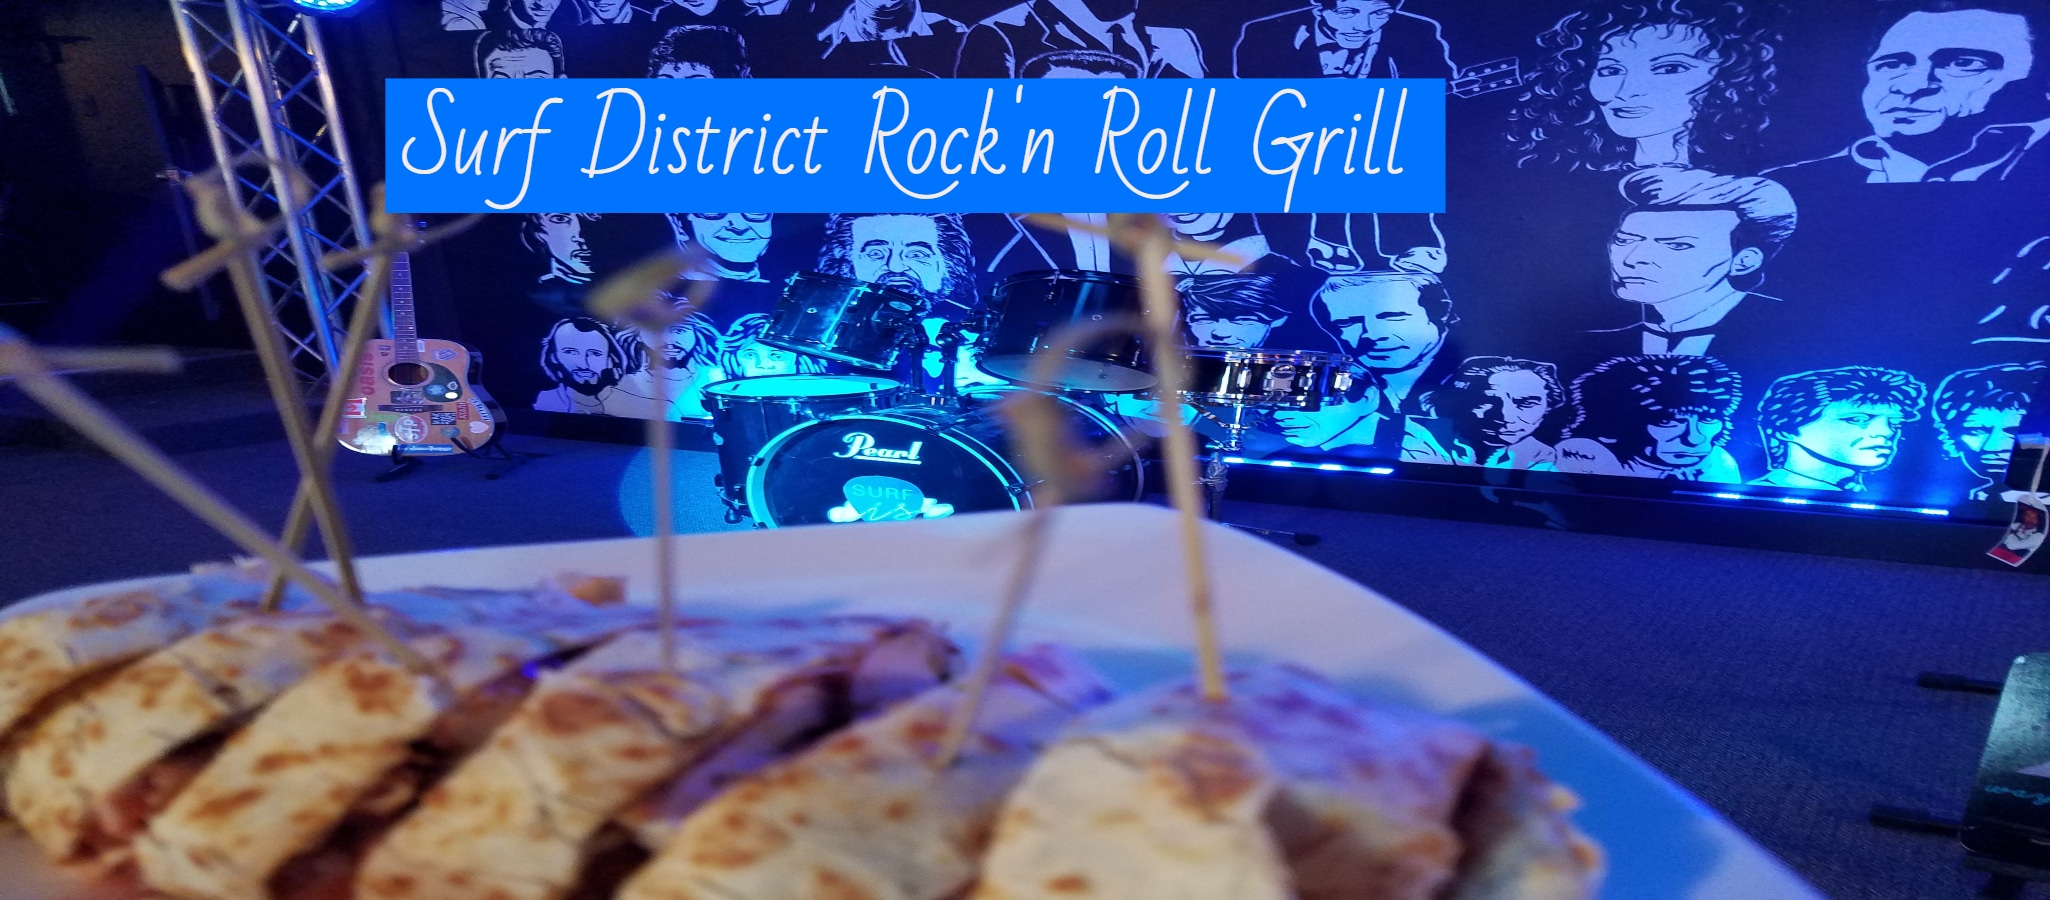 Surf District Rock 'n Roll Grill Offers Fun Experience In Clear Lake, Iowa